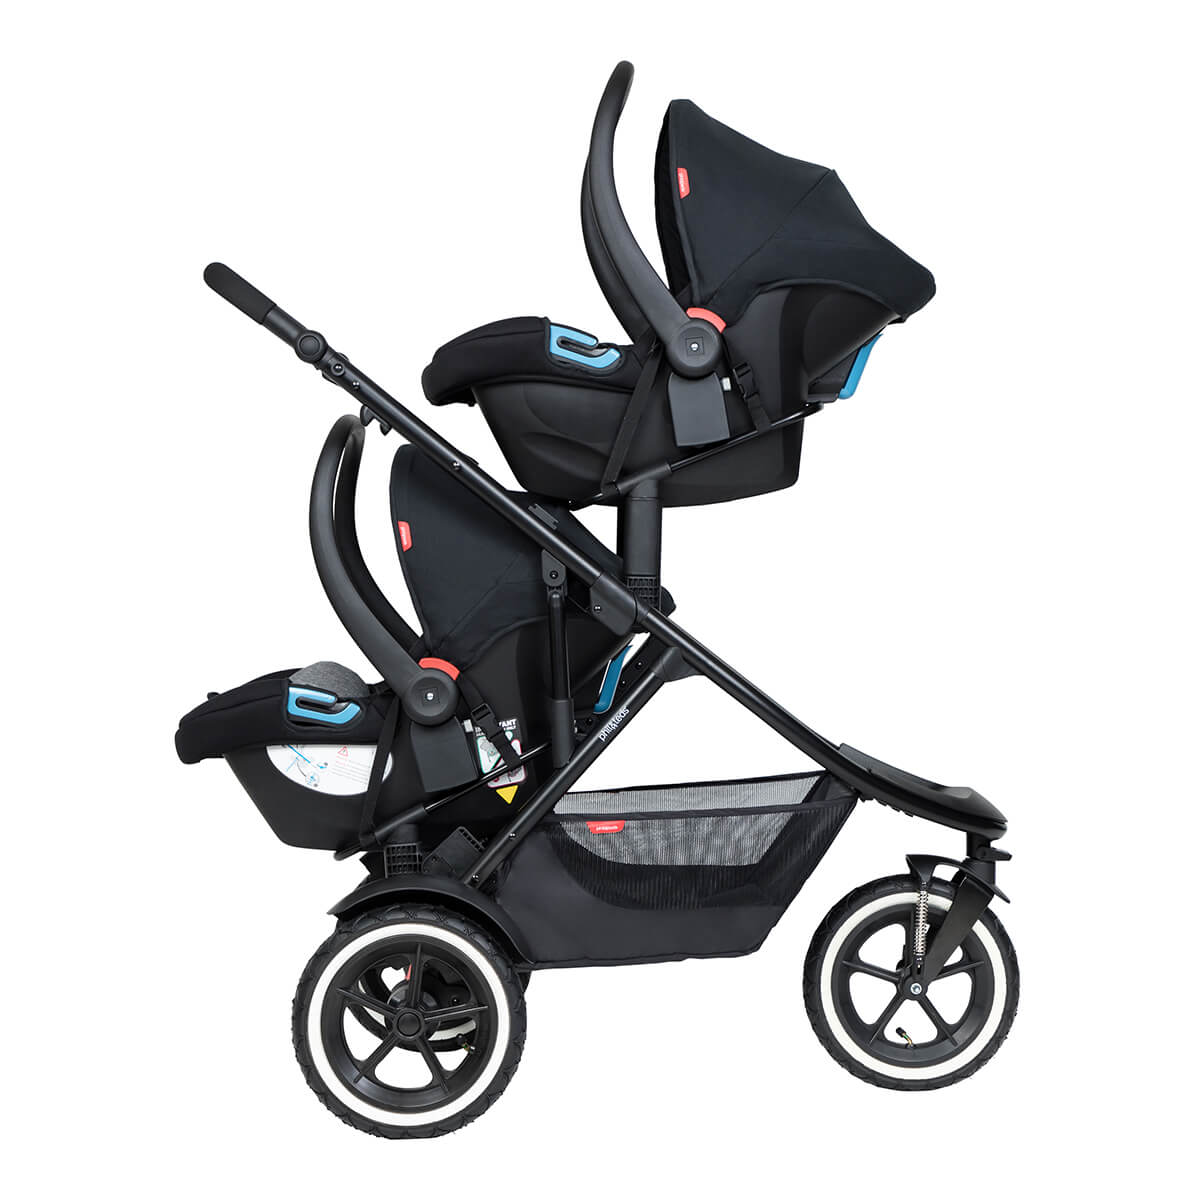 https://cdn.accentuate.io/4381202088013/19466204610754/philteds-sport-buggy-with-double-alpha-travel-system-v1626485342479.jpg?1200x1200